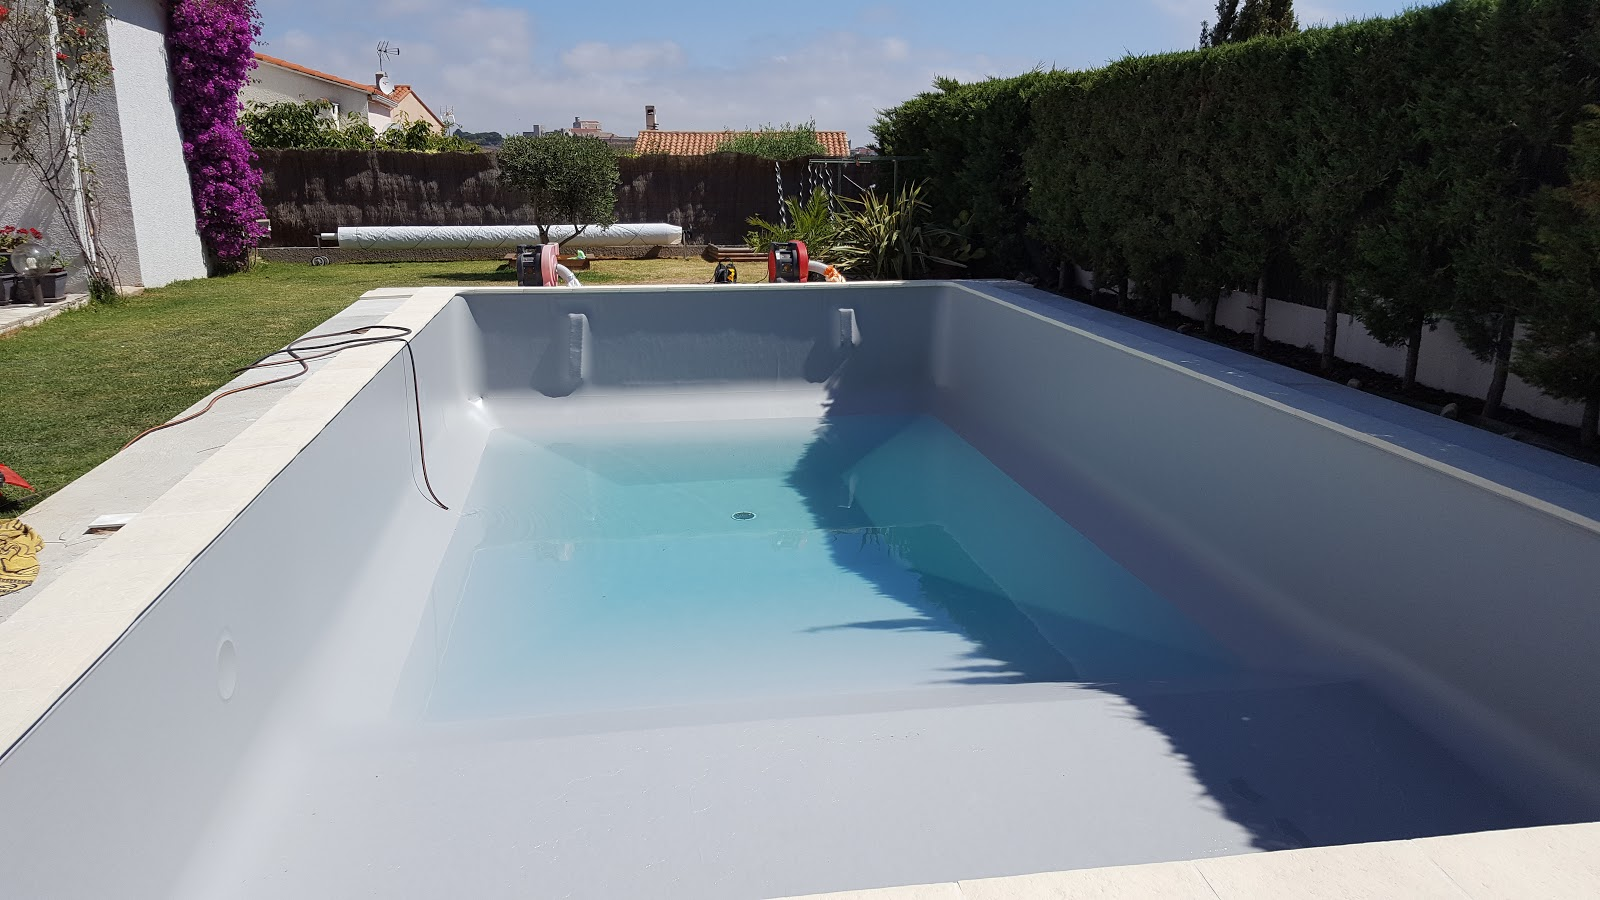 Piscine perpignan 66 aquazur piscine installation for Liner piscine en rouleau